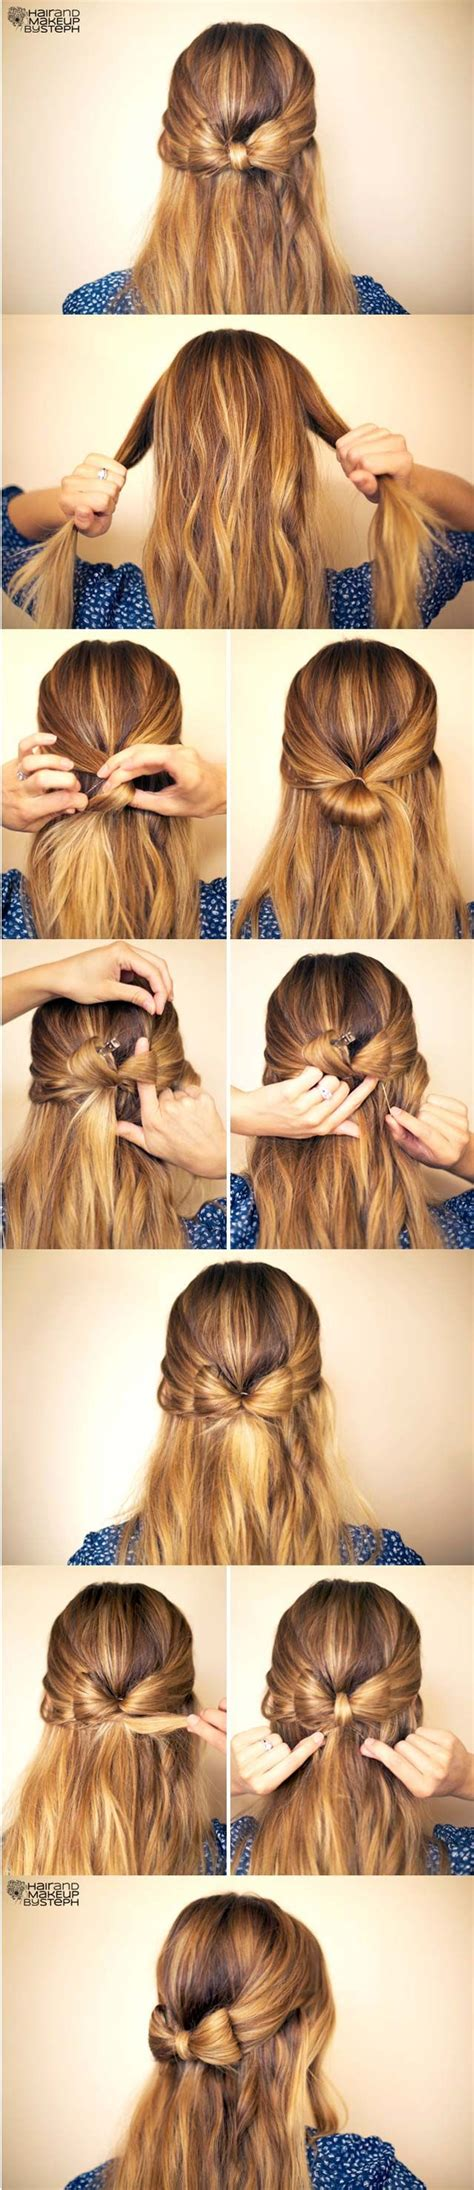 hairstyles easy tutorials 15 super easy hairstyles with tutorials pretty designs